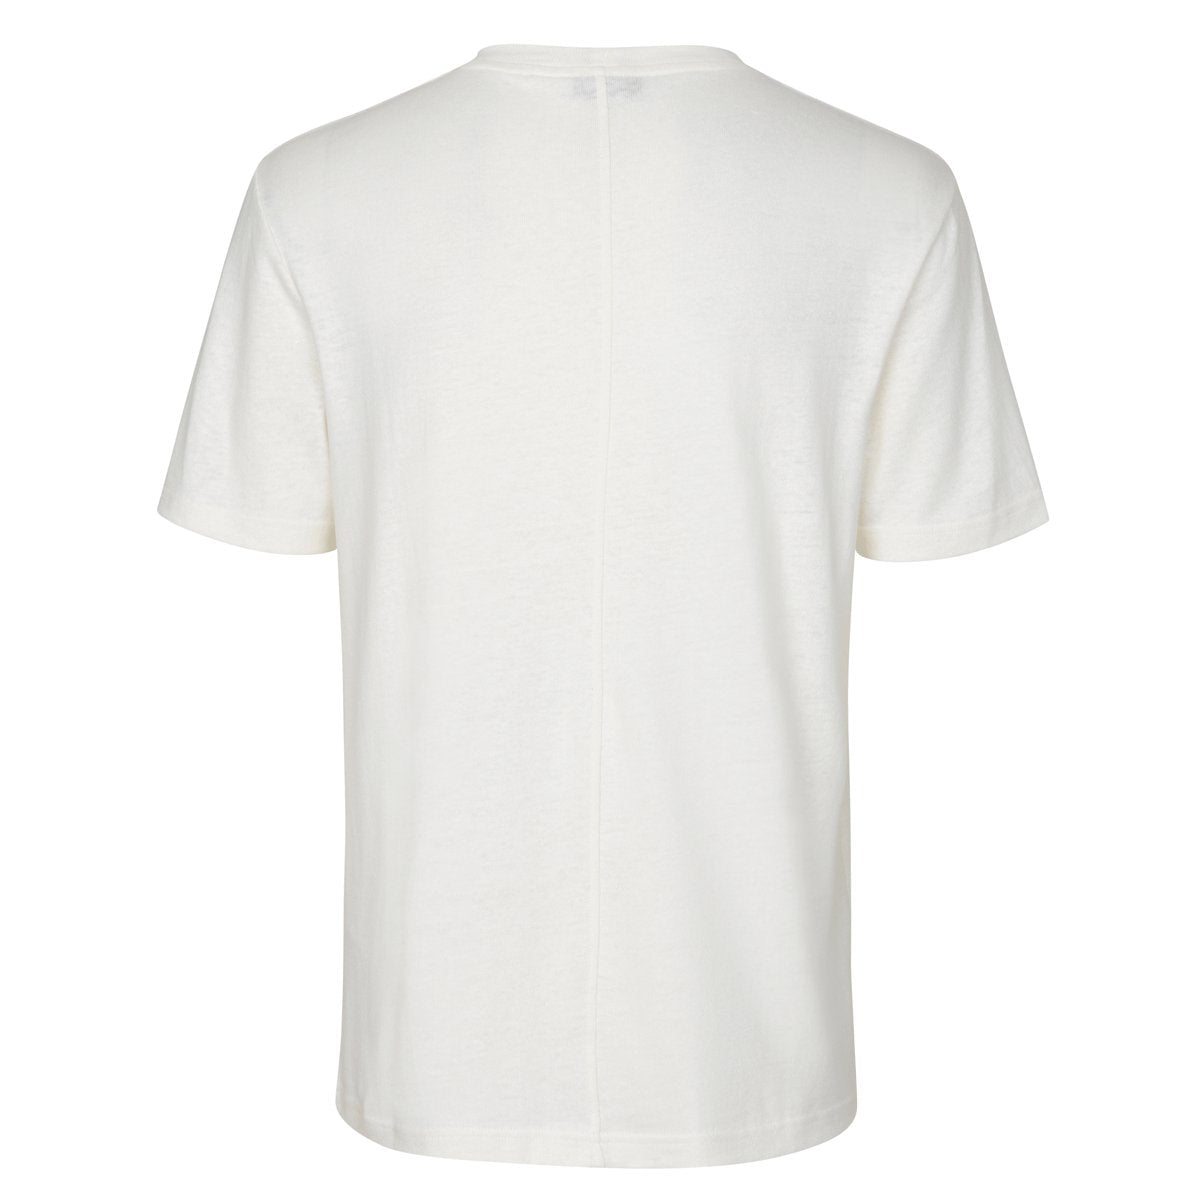 Samsoe Samsoe Ballum T-Shirt 10014, Clear Cream